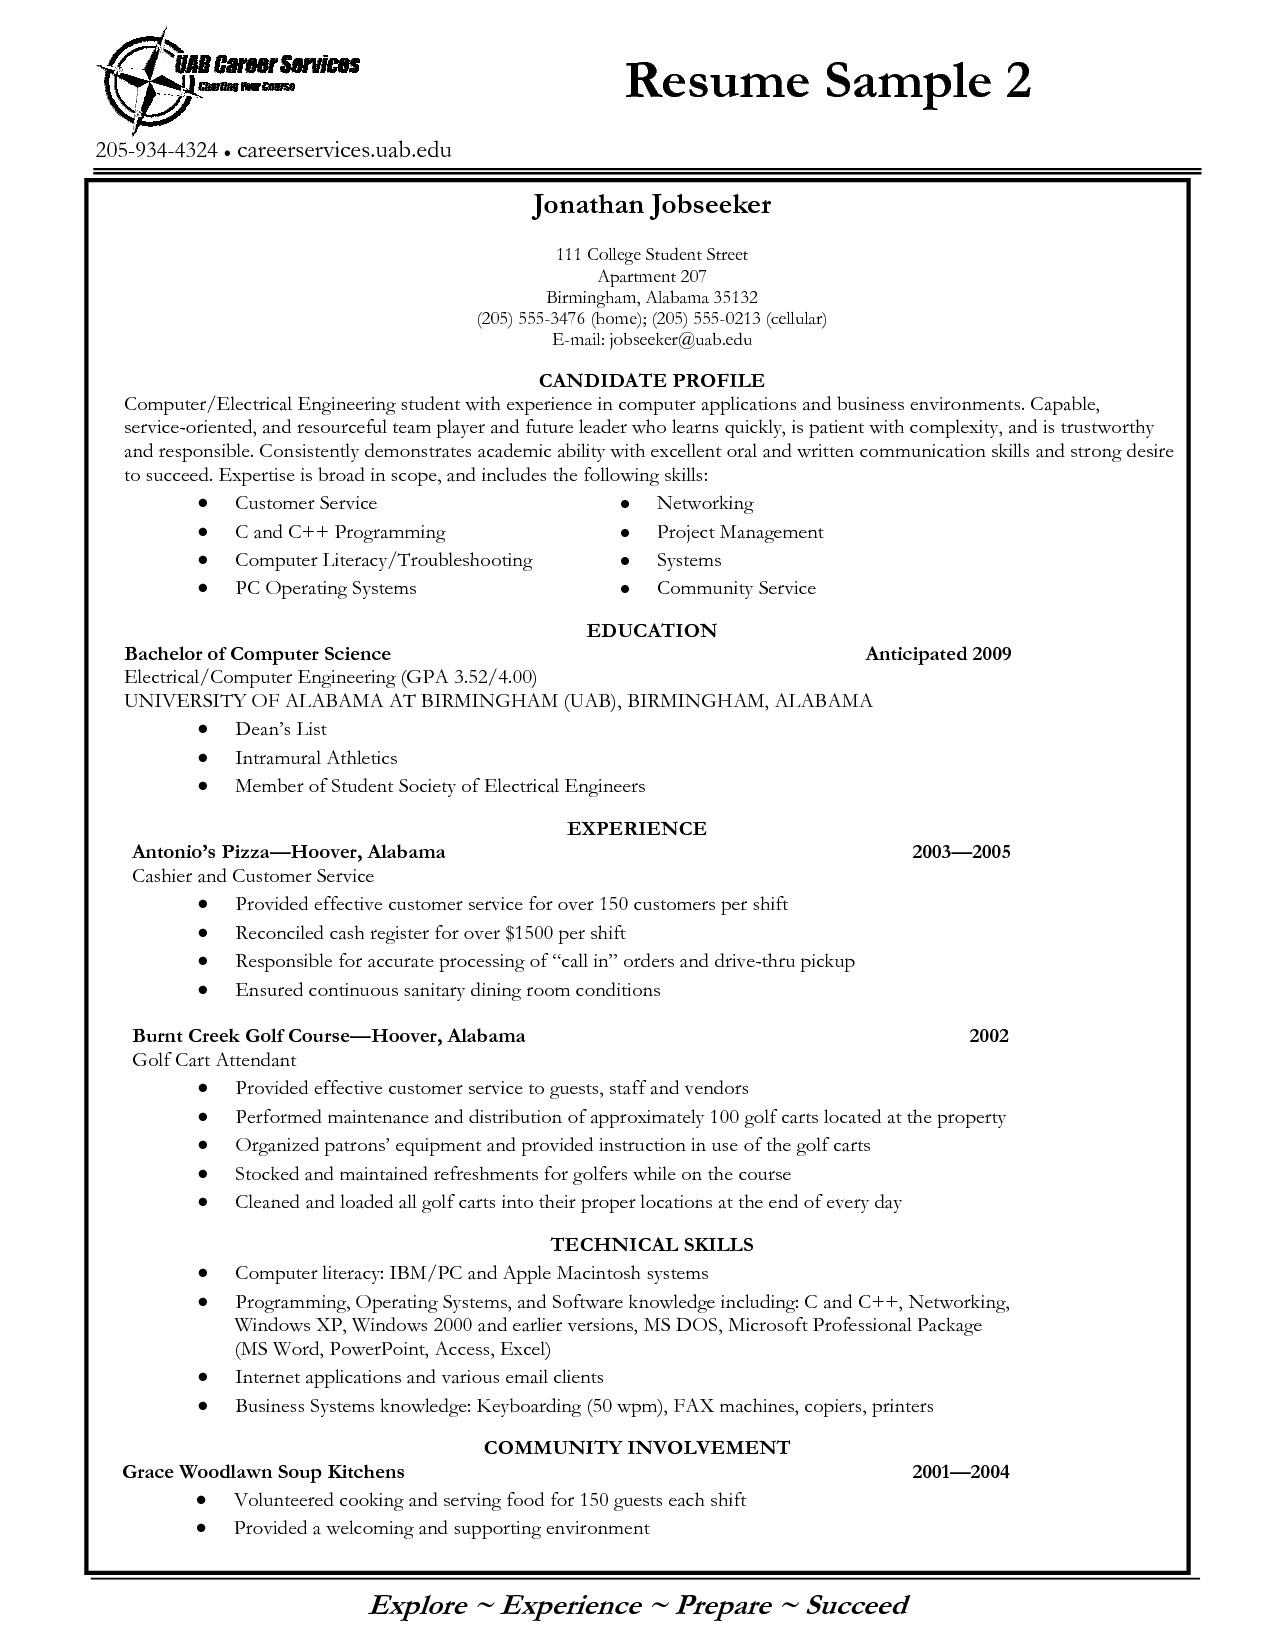 Resume For College Graduate Tags College Graduate Resume No Experience College Graduate Resume